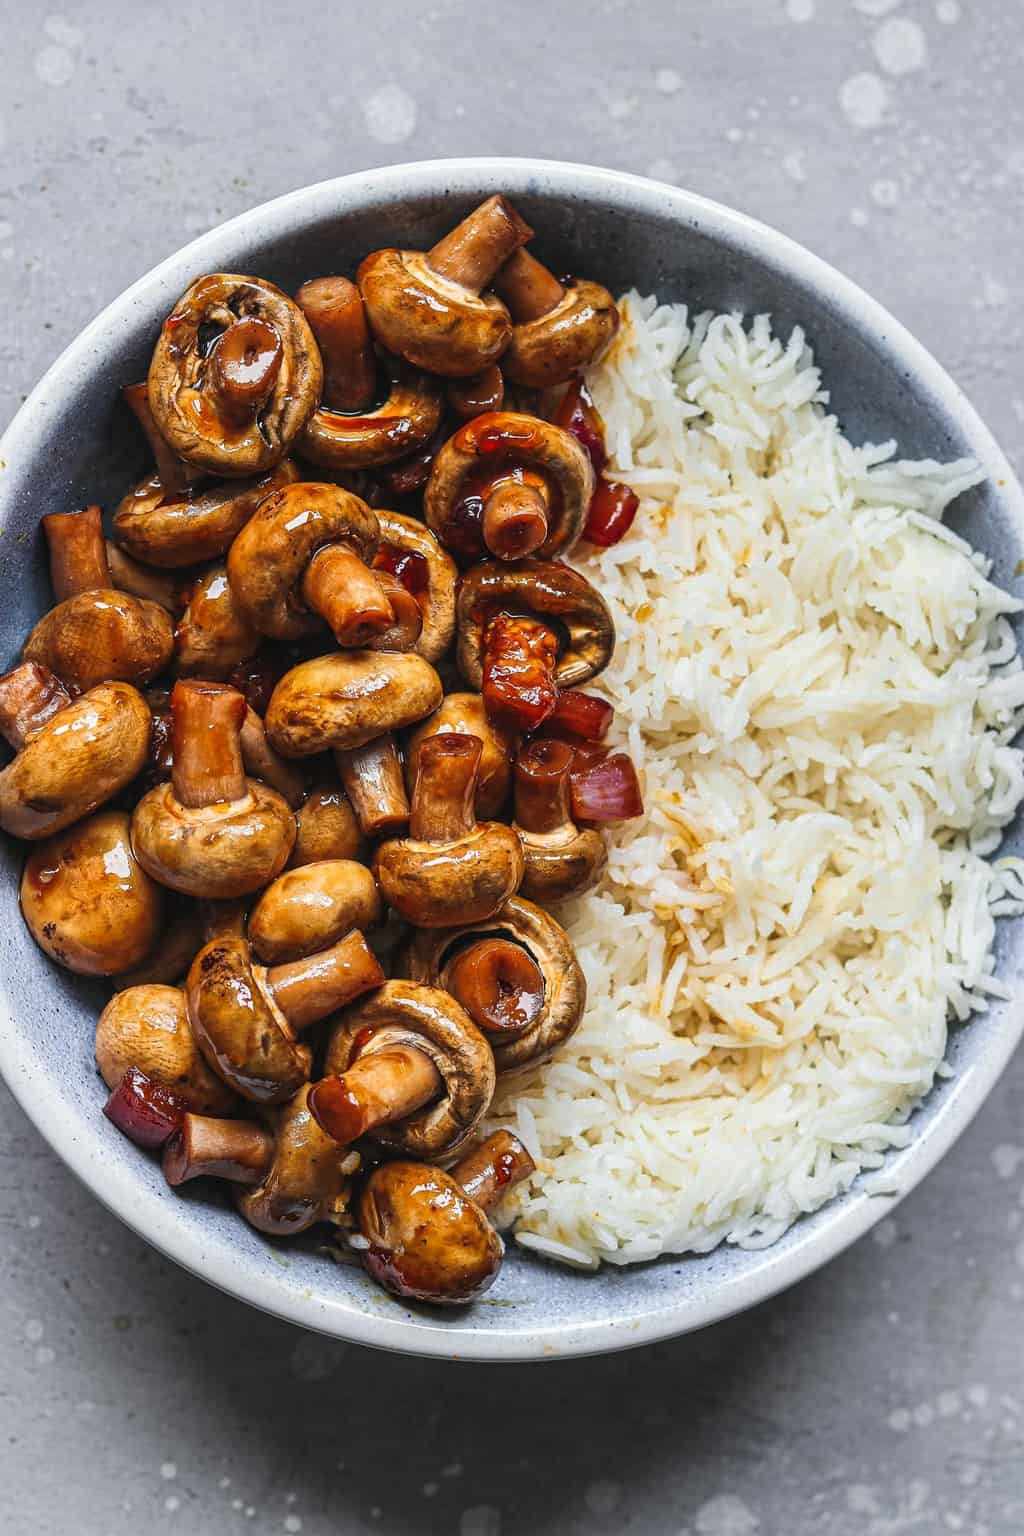 Mushrooms and rice in a blue bowl